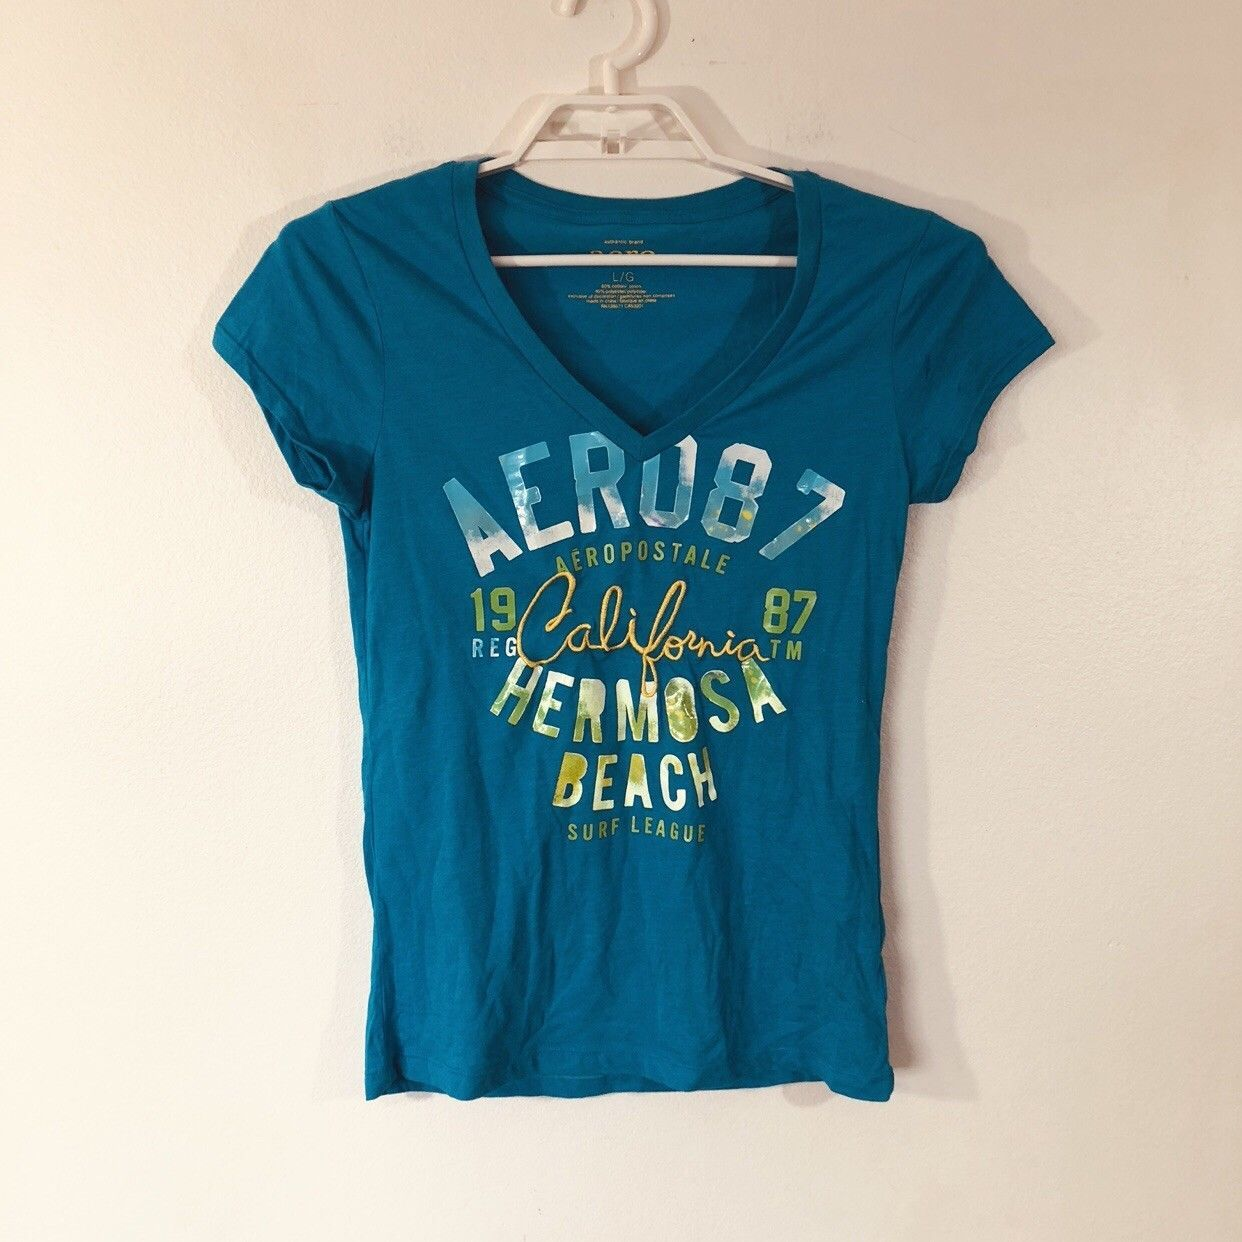 Primary image for Aeropostale T-Shirt V-Neck Graphic Tee Large Hermosa Beach 87 California